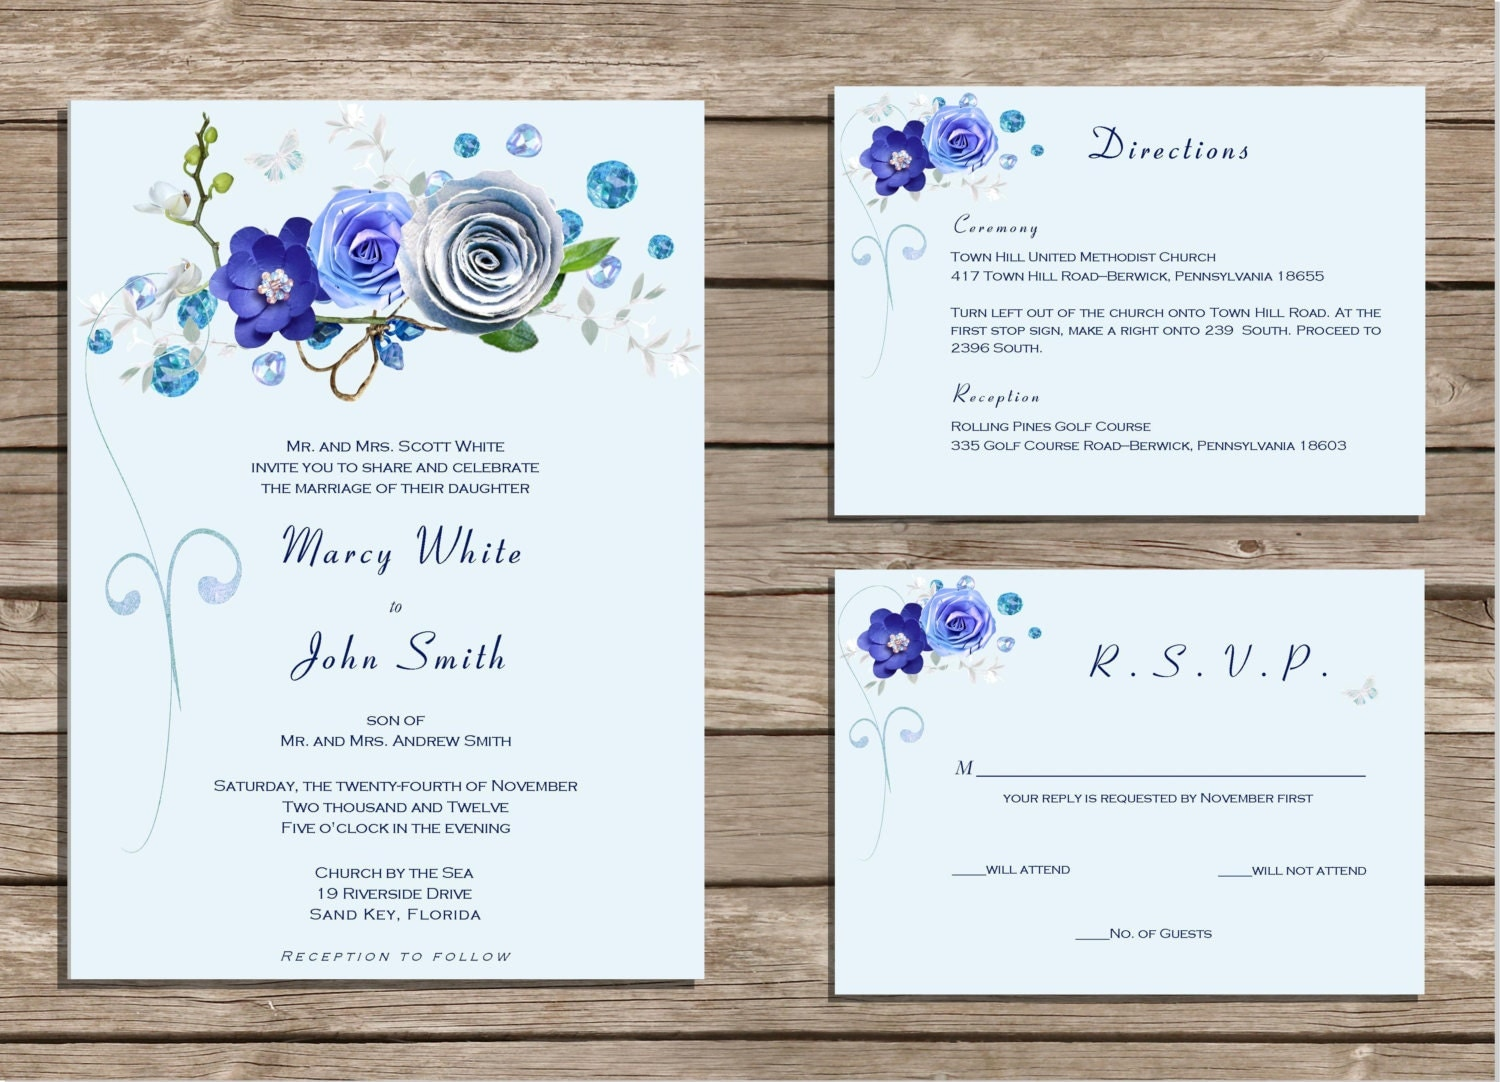 Wedding Invitation Designs Royal Blue: PRINTABLE Wedding Invitation